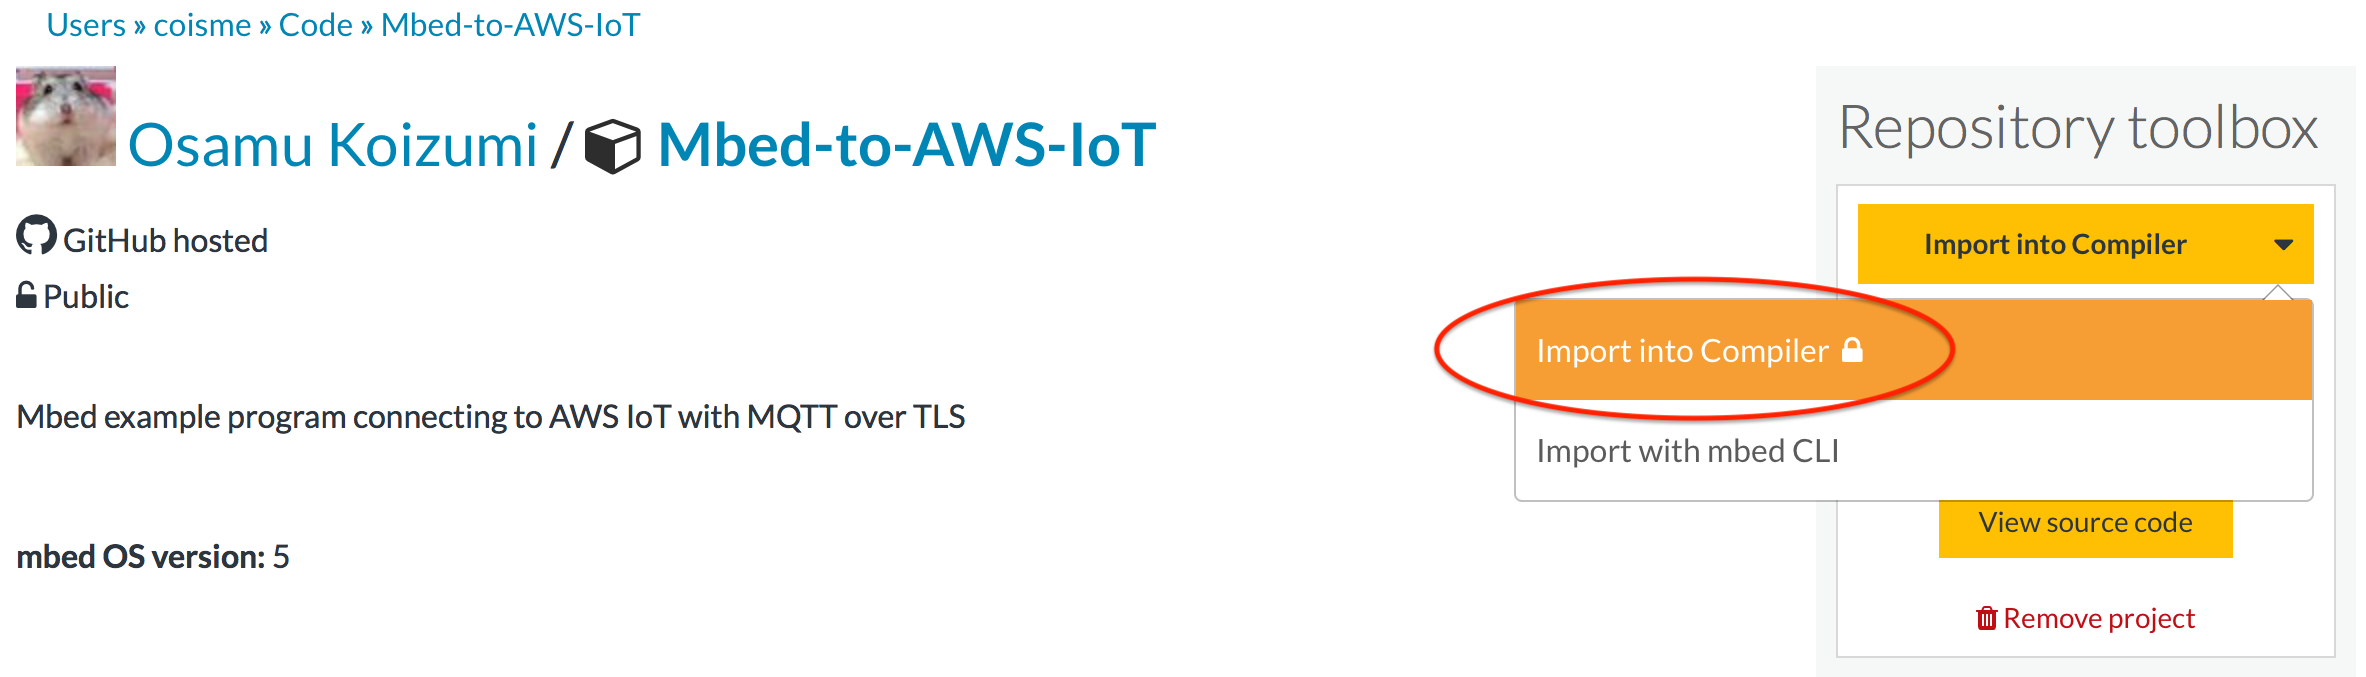 AWS IoT from Mbed OS device | Mbed